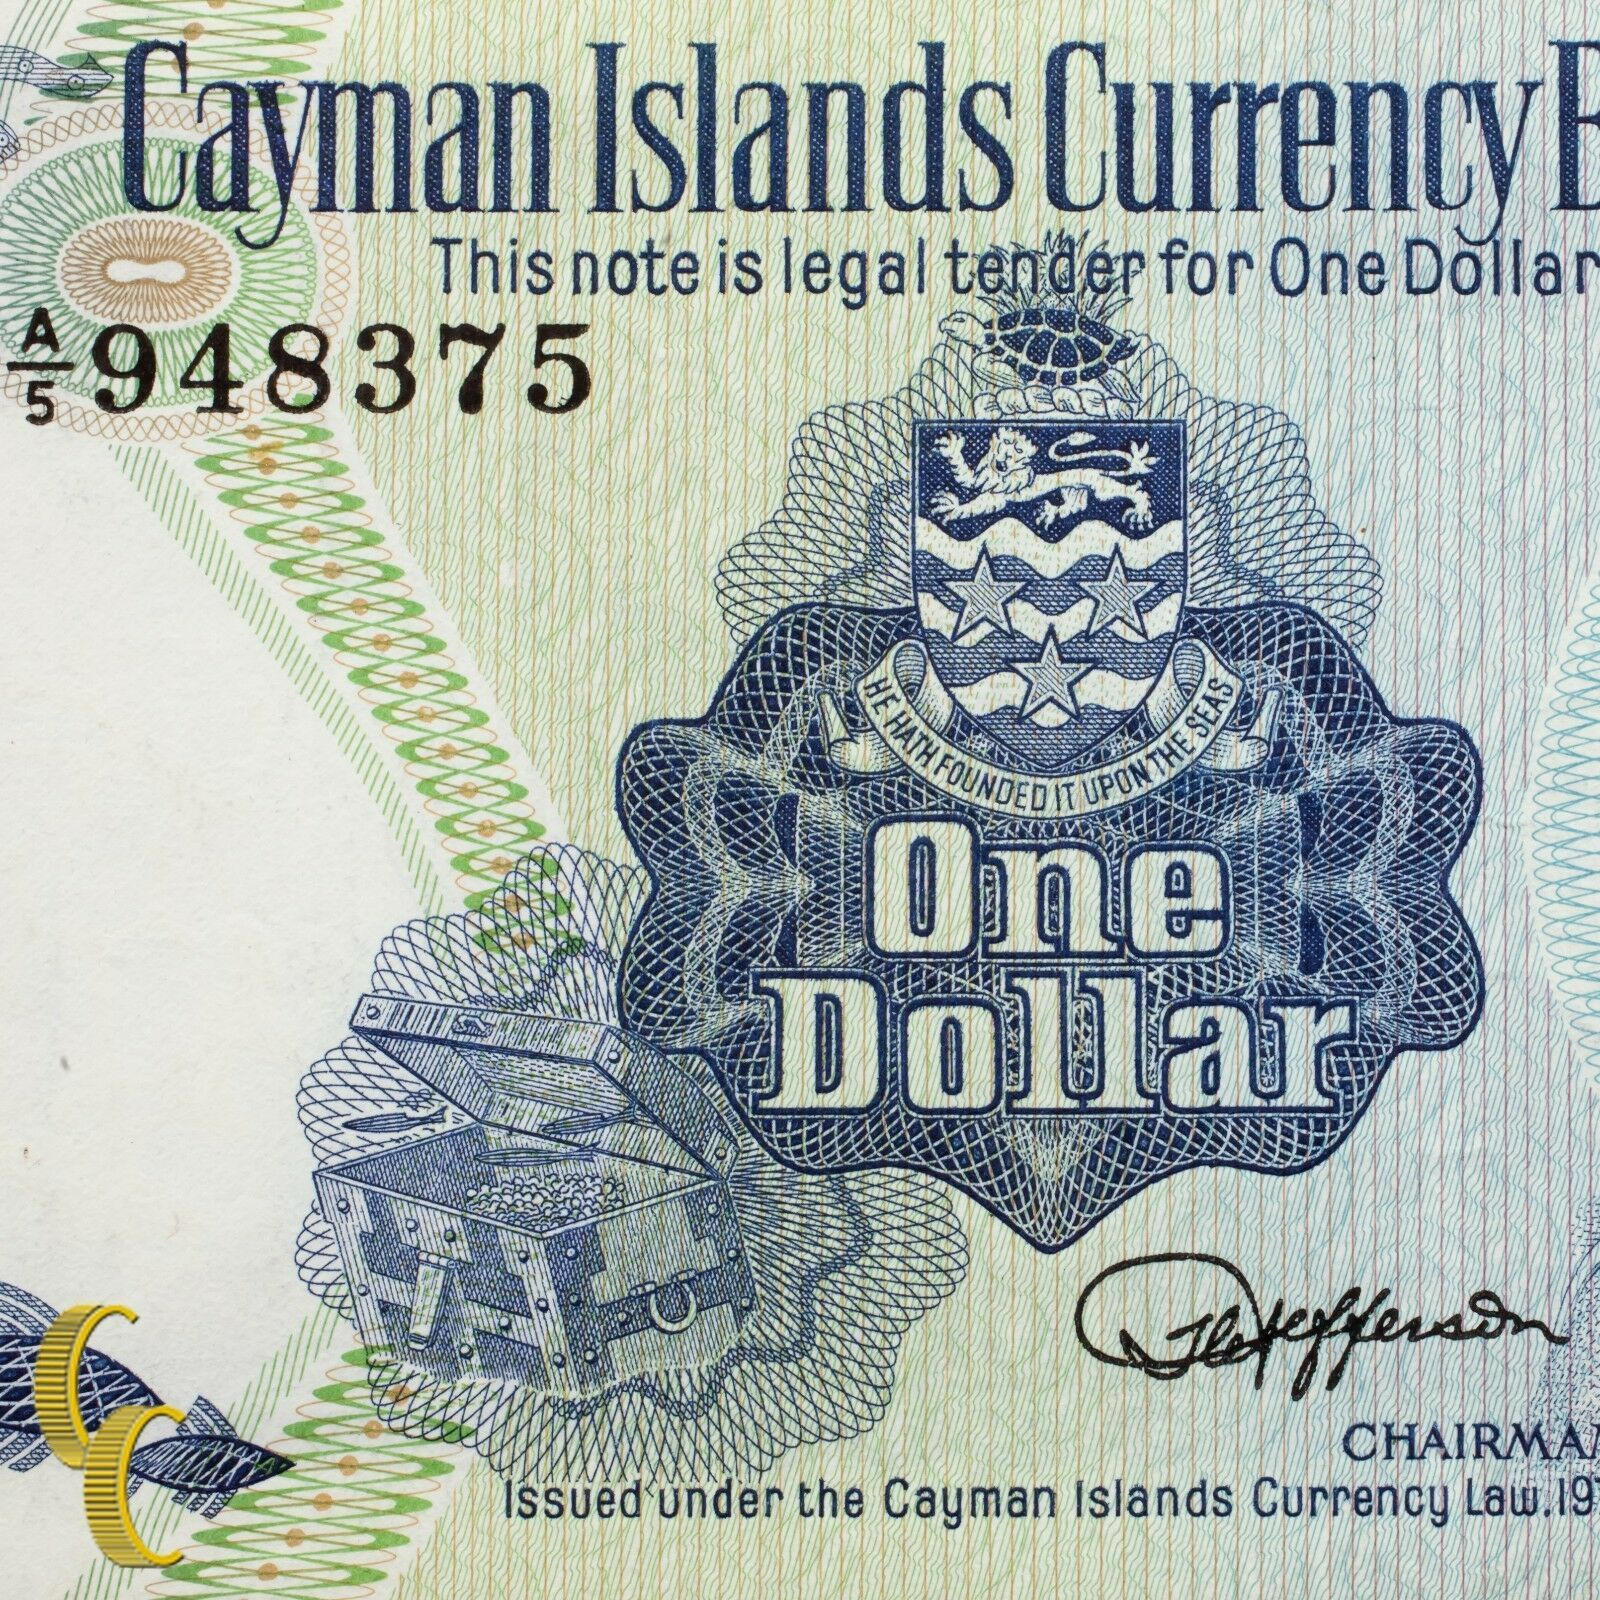 1974 Cayman Islands Moneda Board (Au ) About que No Ha Circulado Estado